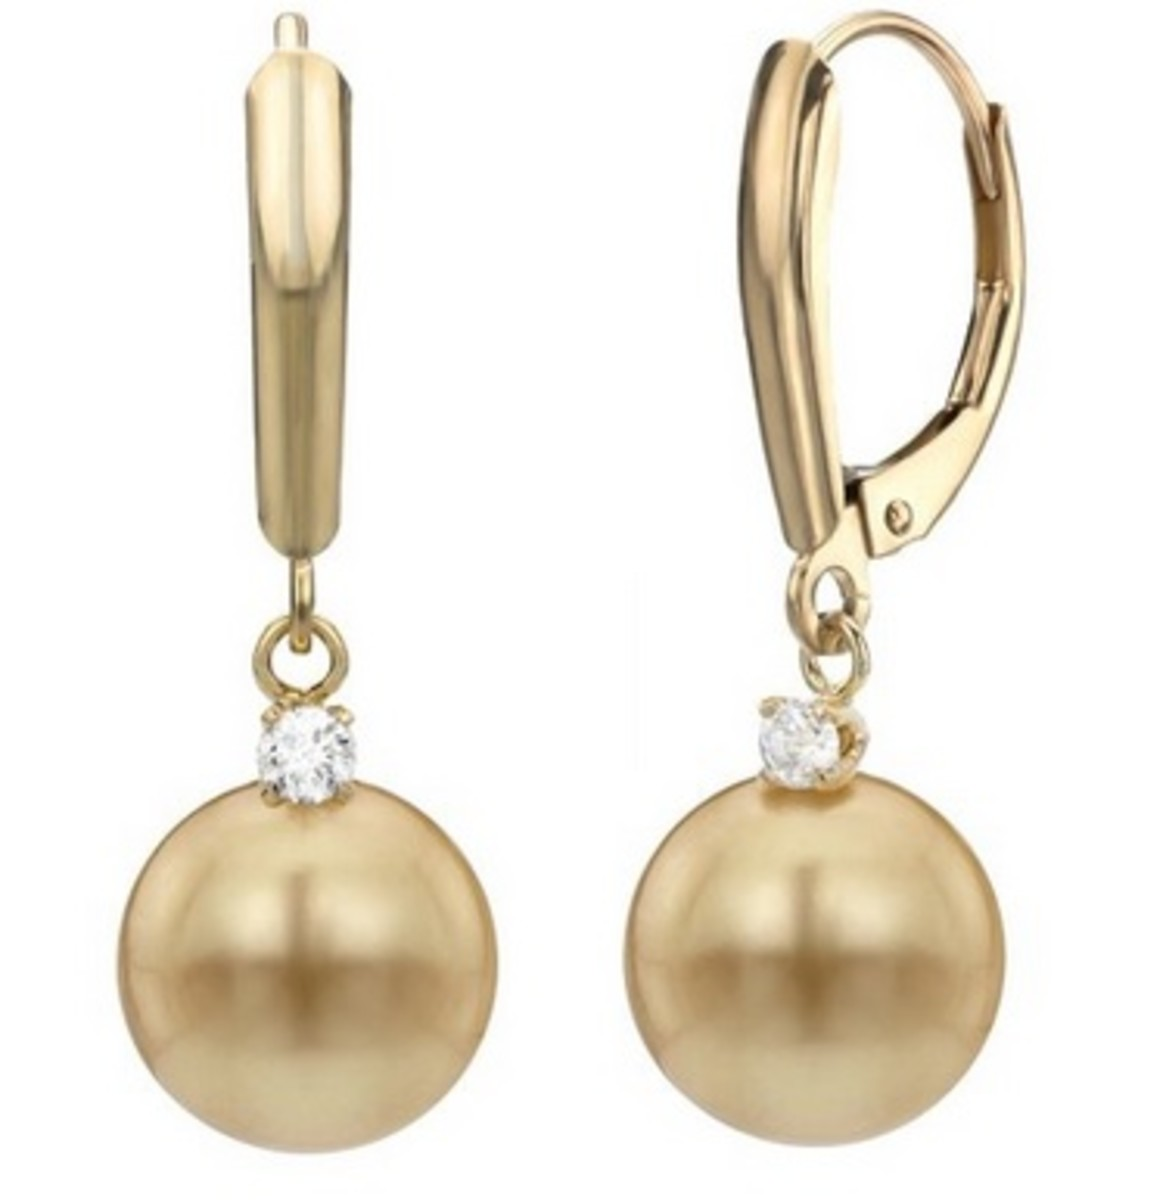 Cheaper lever-back golden South Sea pearl earrings